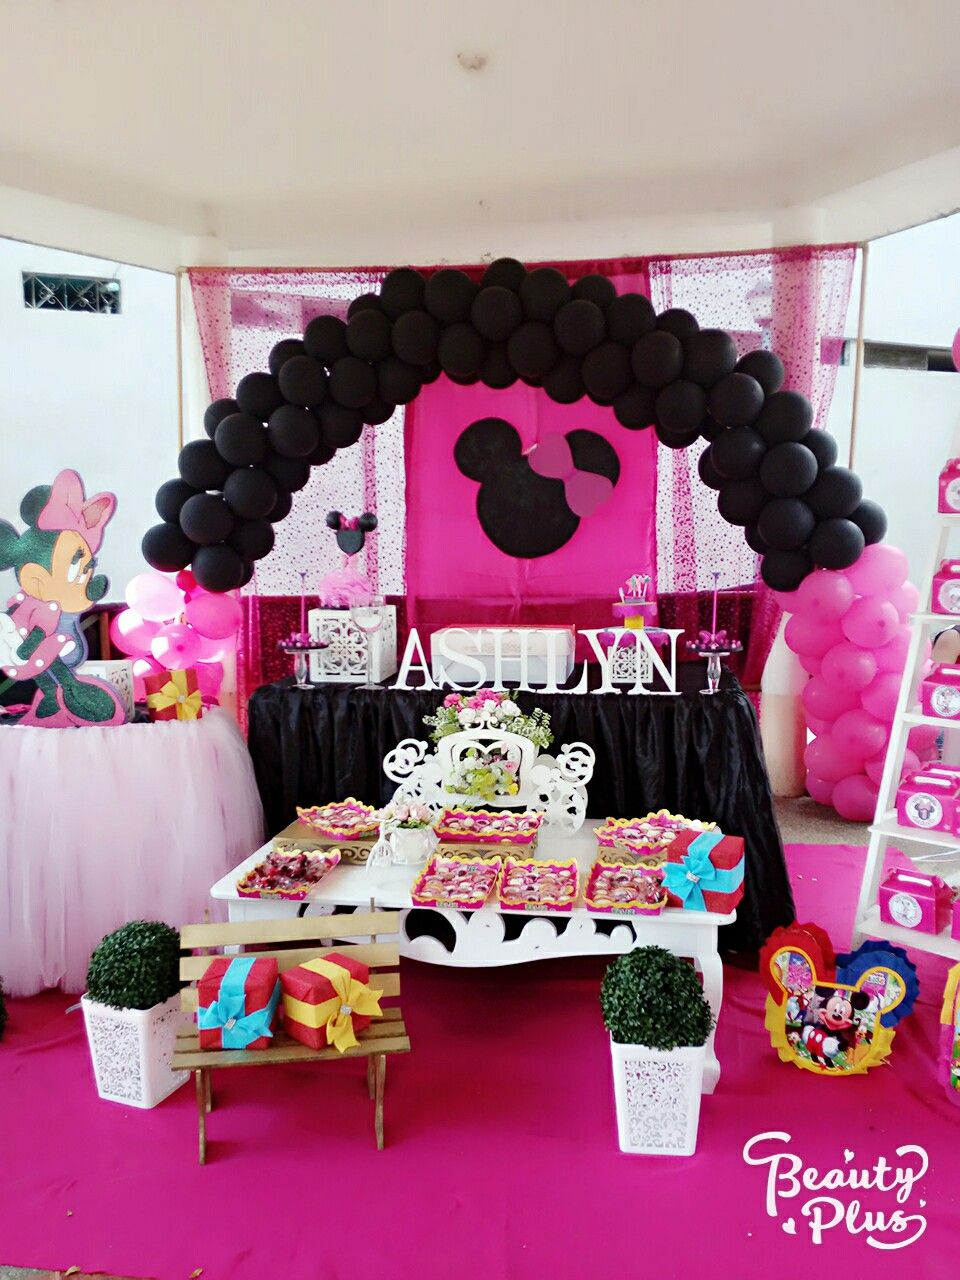 Fiesta Tematica Minnie Mouse 0983890572 | Minnie Mouse | Pinterest ...